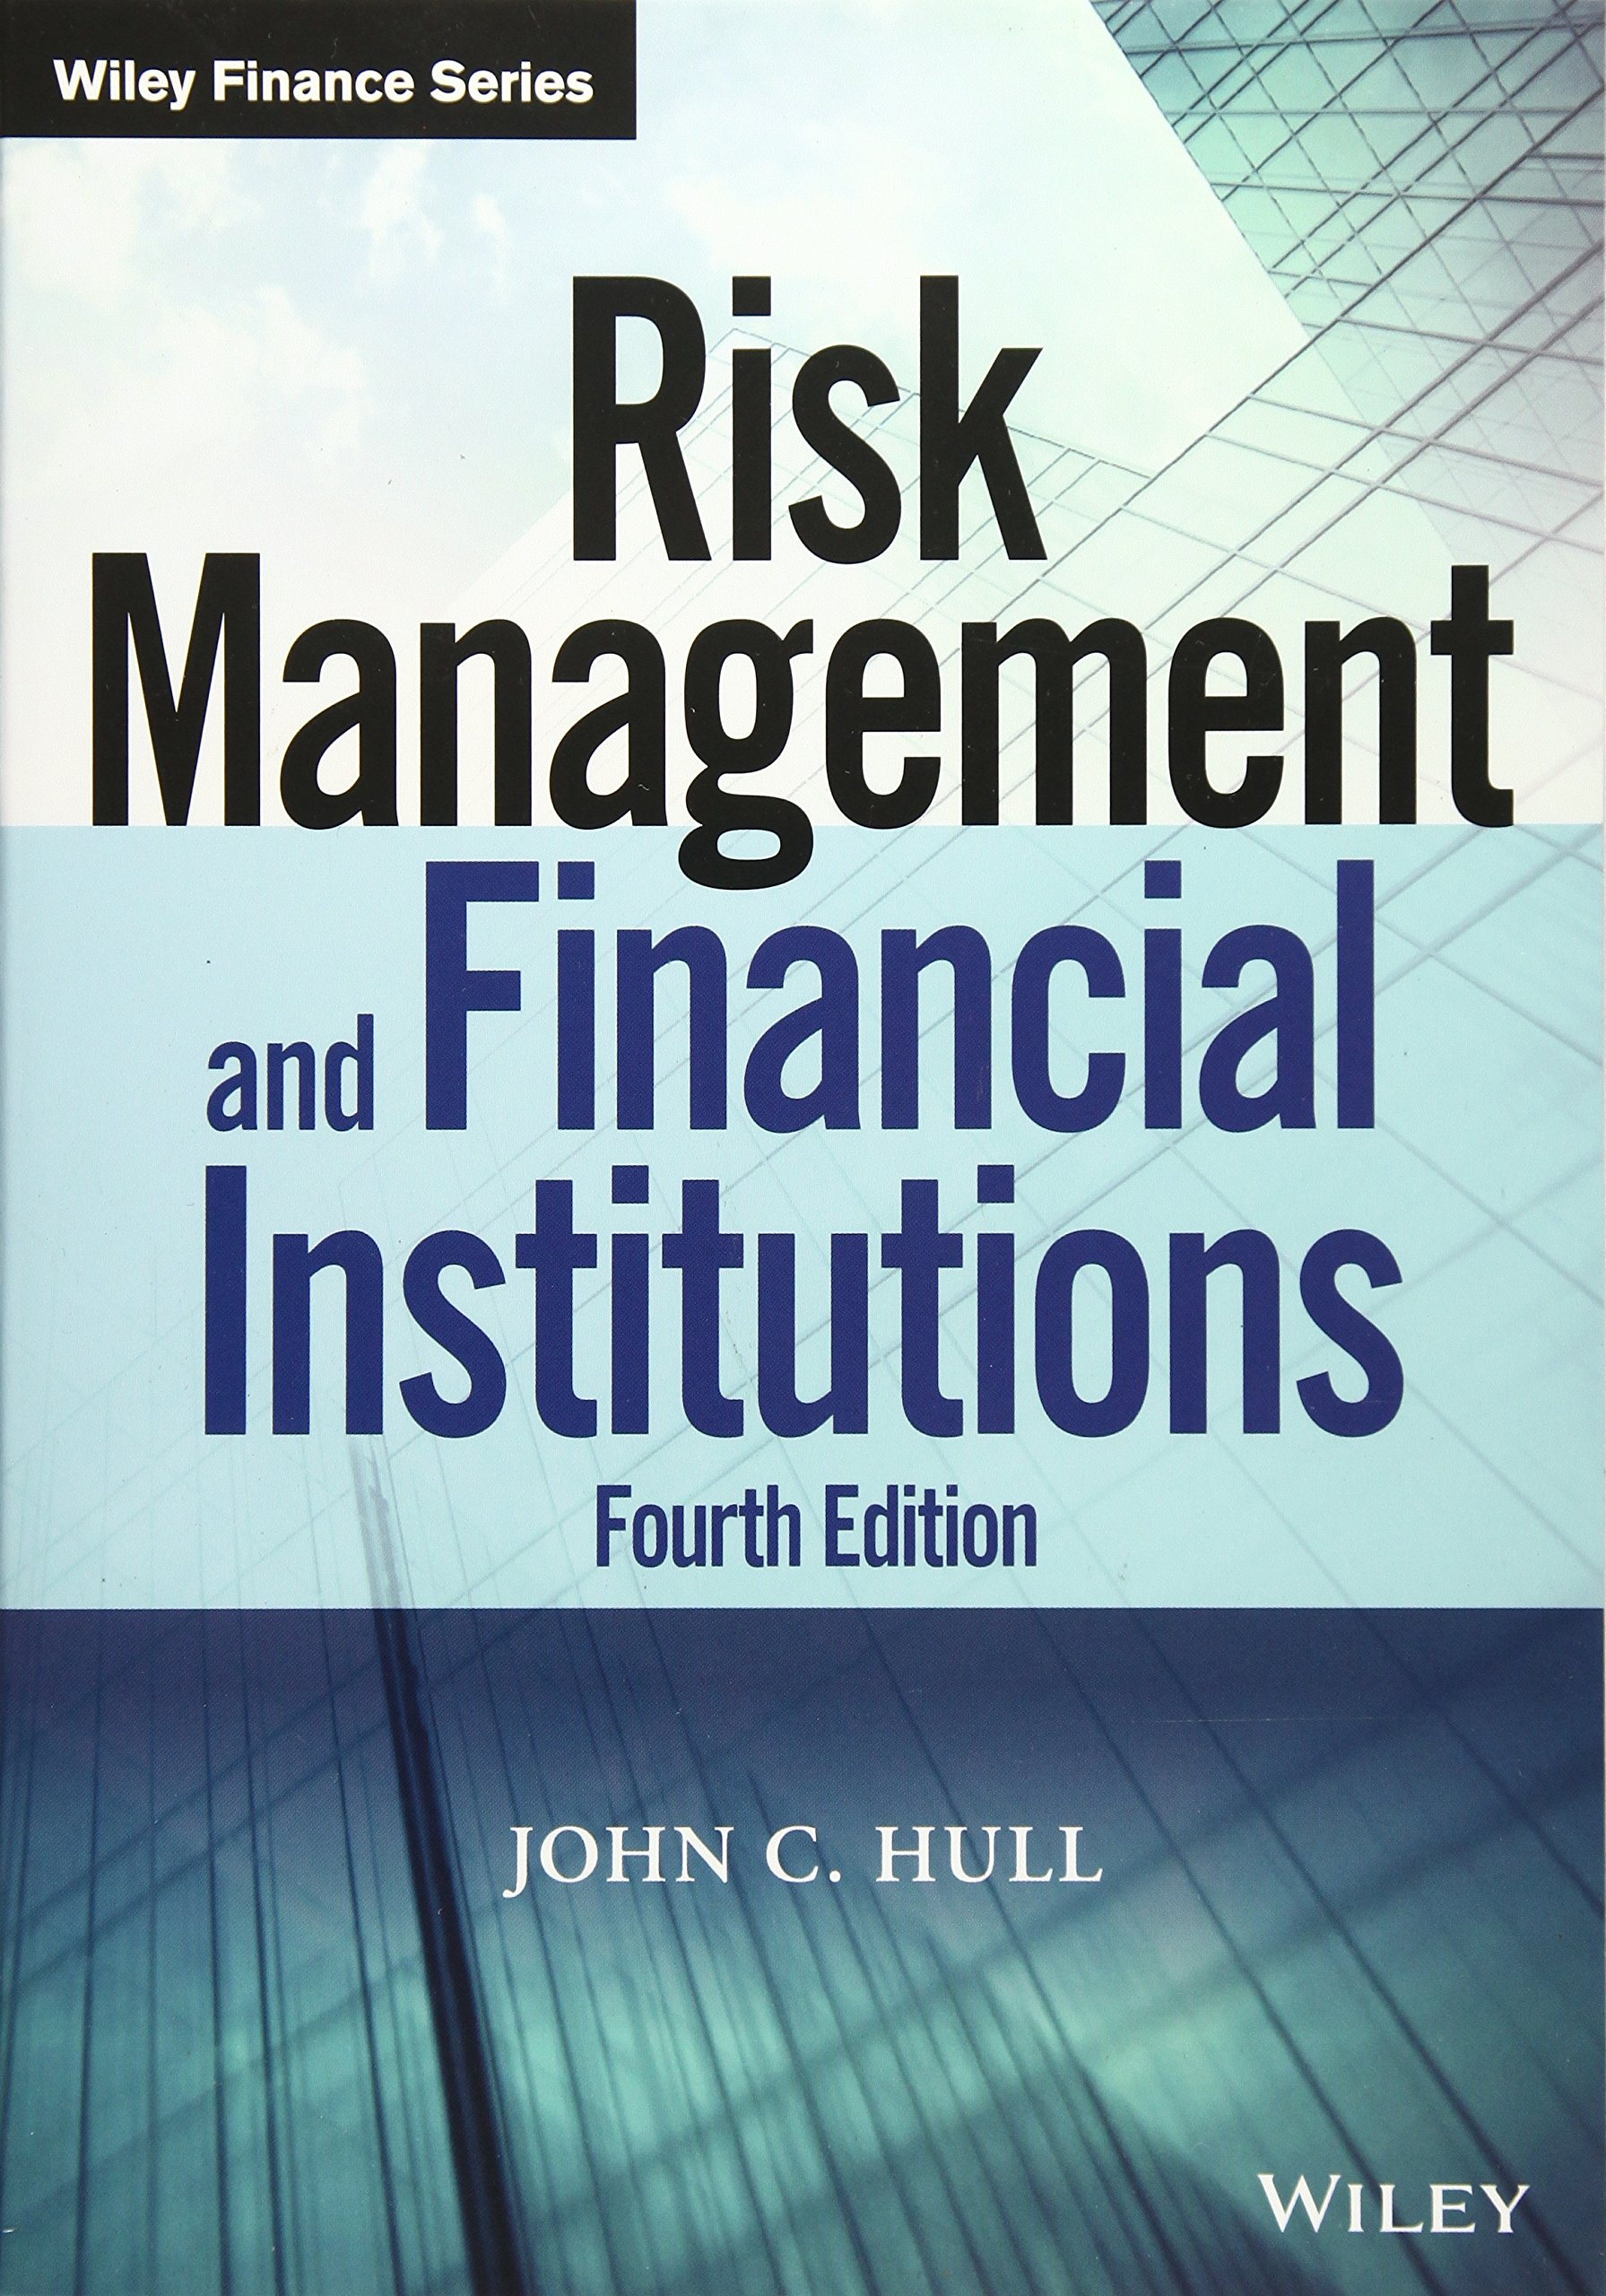 Image OfRisk Management And Financial Institutions, Fourth Edition (Wiley Finance Editions)